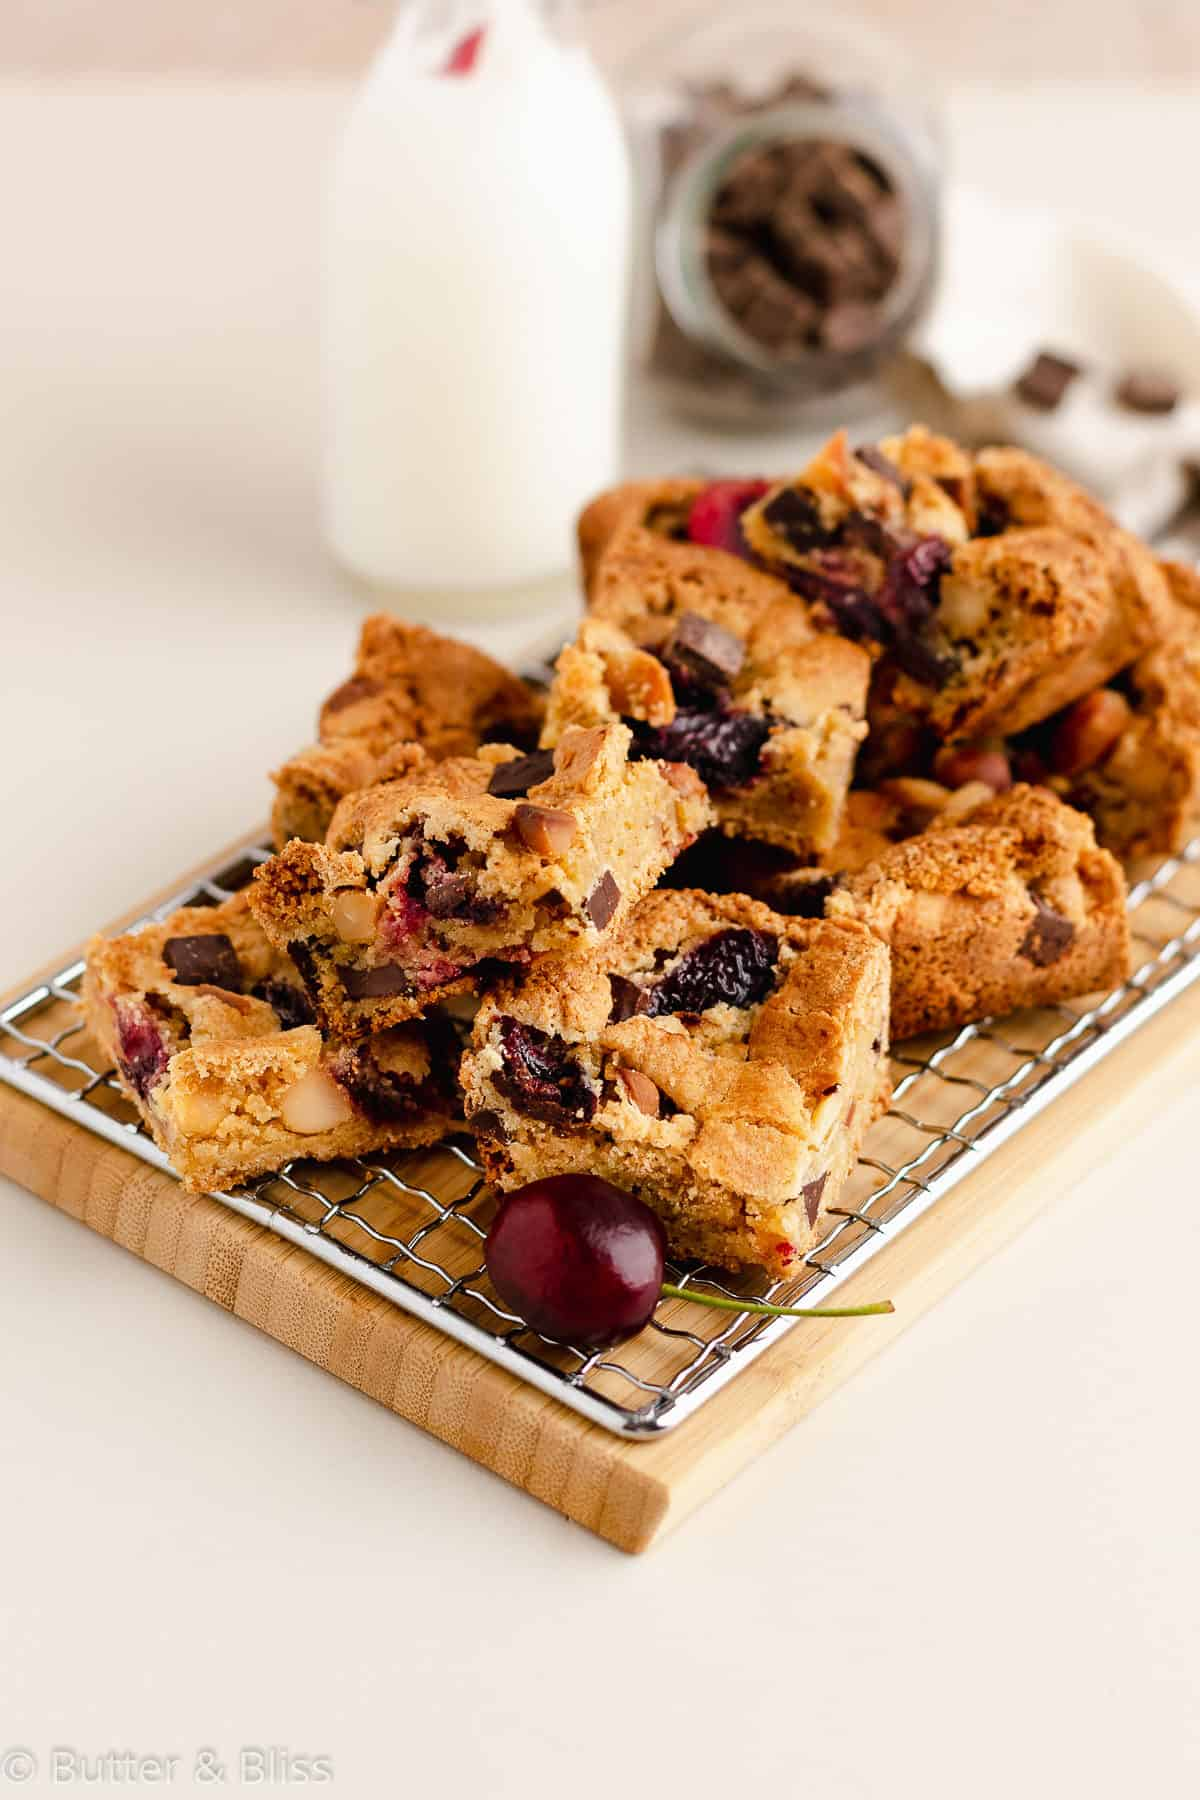 Gluten free blondie squares with chocolate, cherries, and macadamia nuts